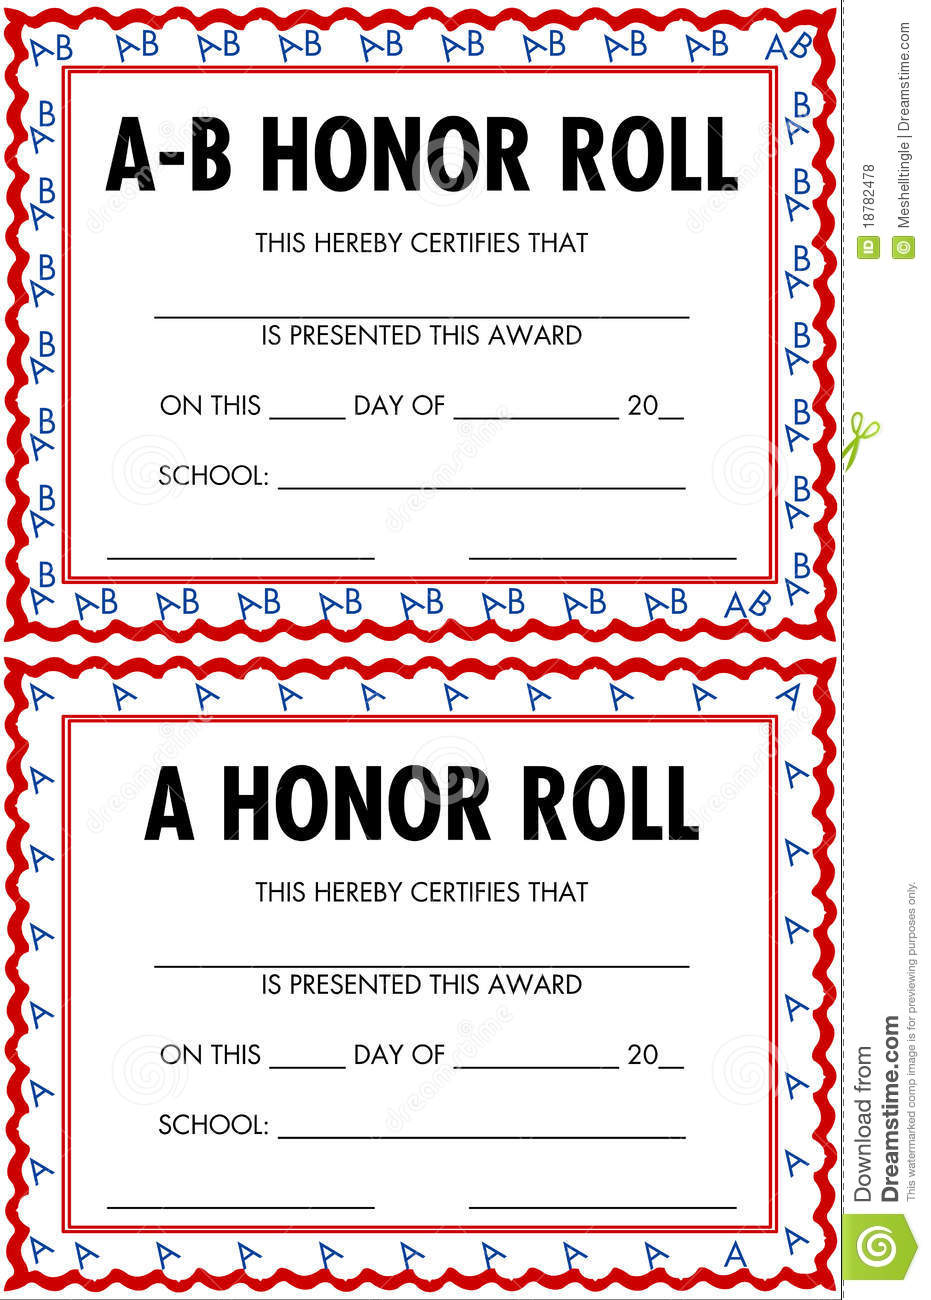 Honor Roll Certificates Royalty Free Stock Photos - Image: 18782478